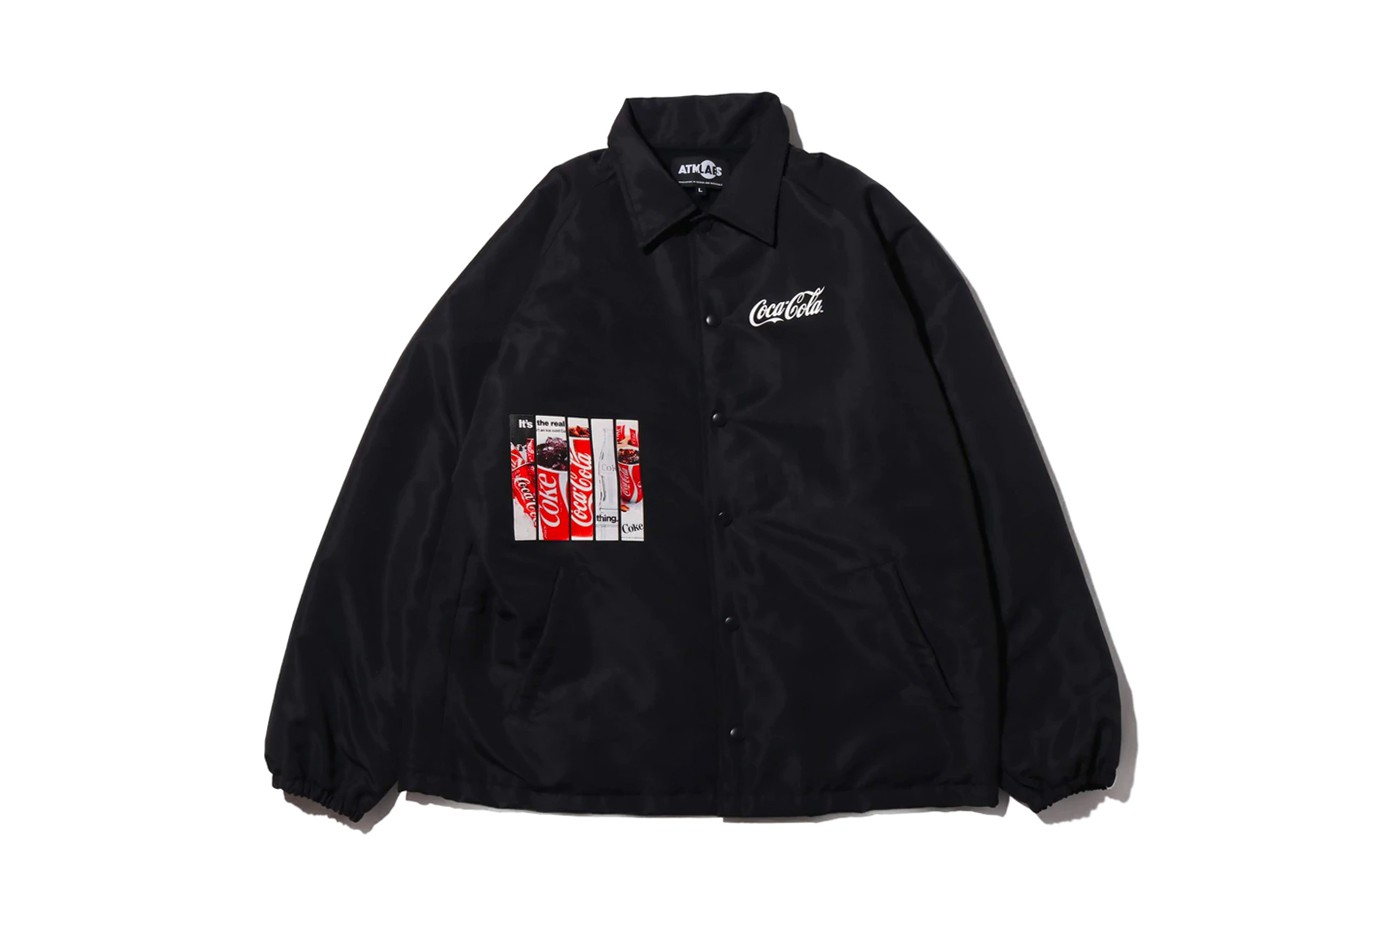 Supreme Fall/Winter 2019 Week 8 Drop List 3 The Rolling Stones Cactus Plant Flea Market COMME des GARÇONS 1017 ALYX 9SM Blackmeans Atmos Lab Coca-Cola Carhartt WIP Forty Percent Against Rights